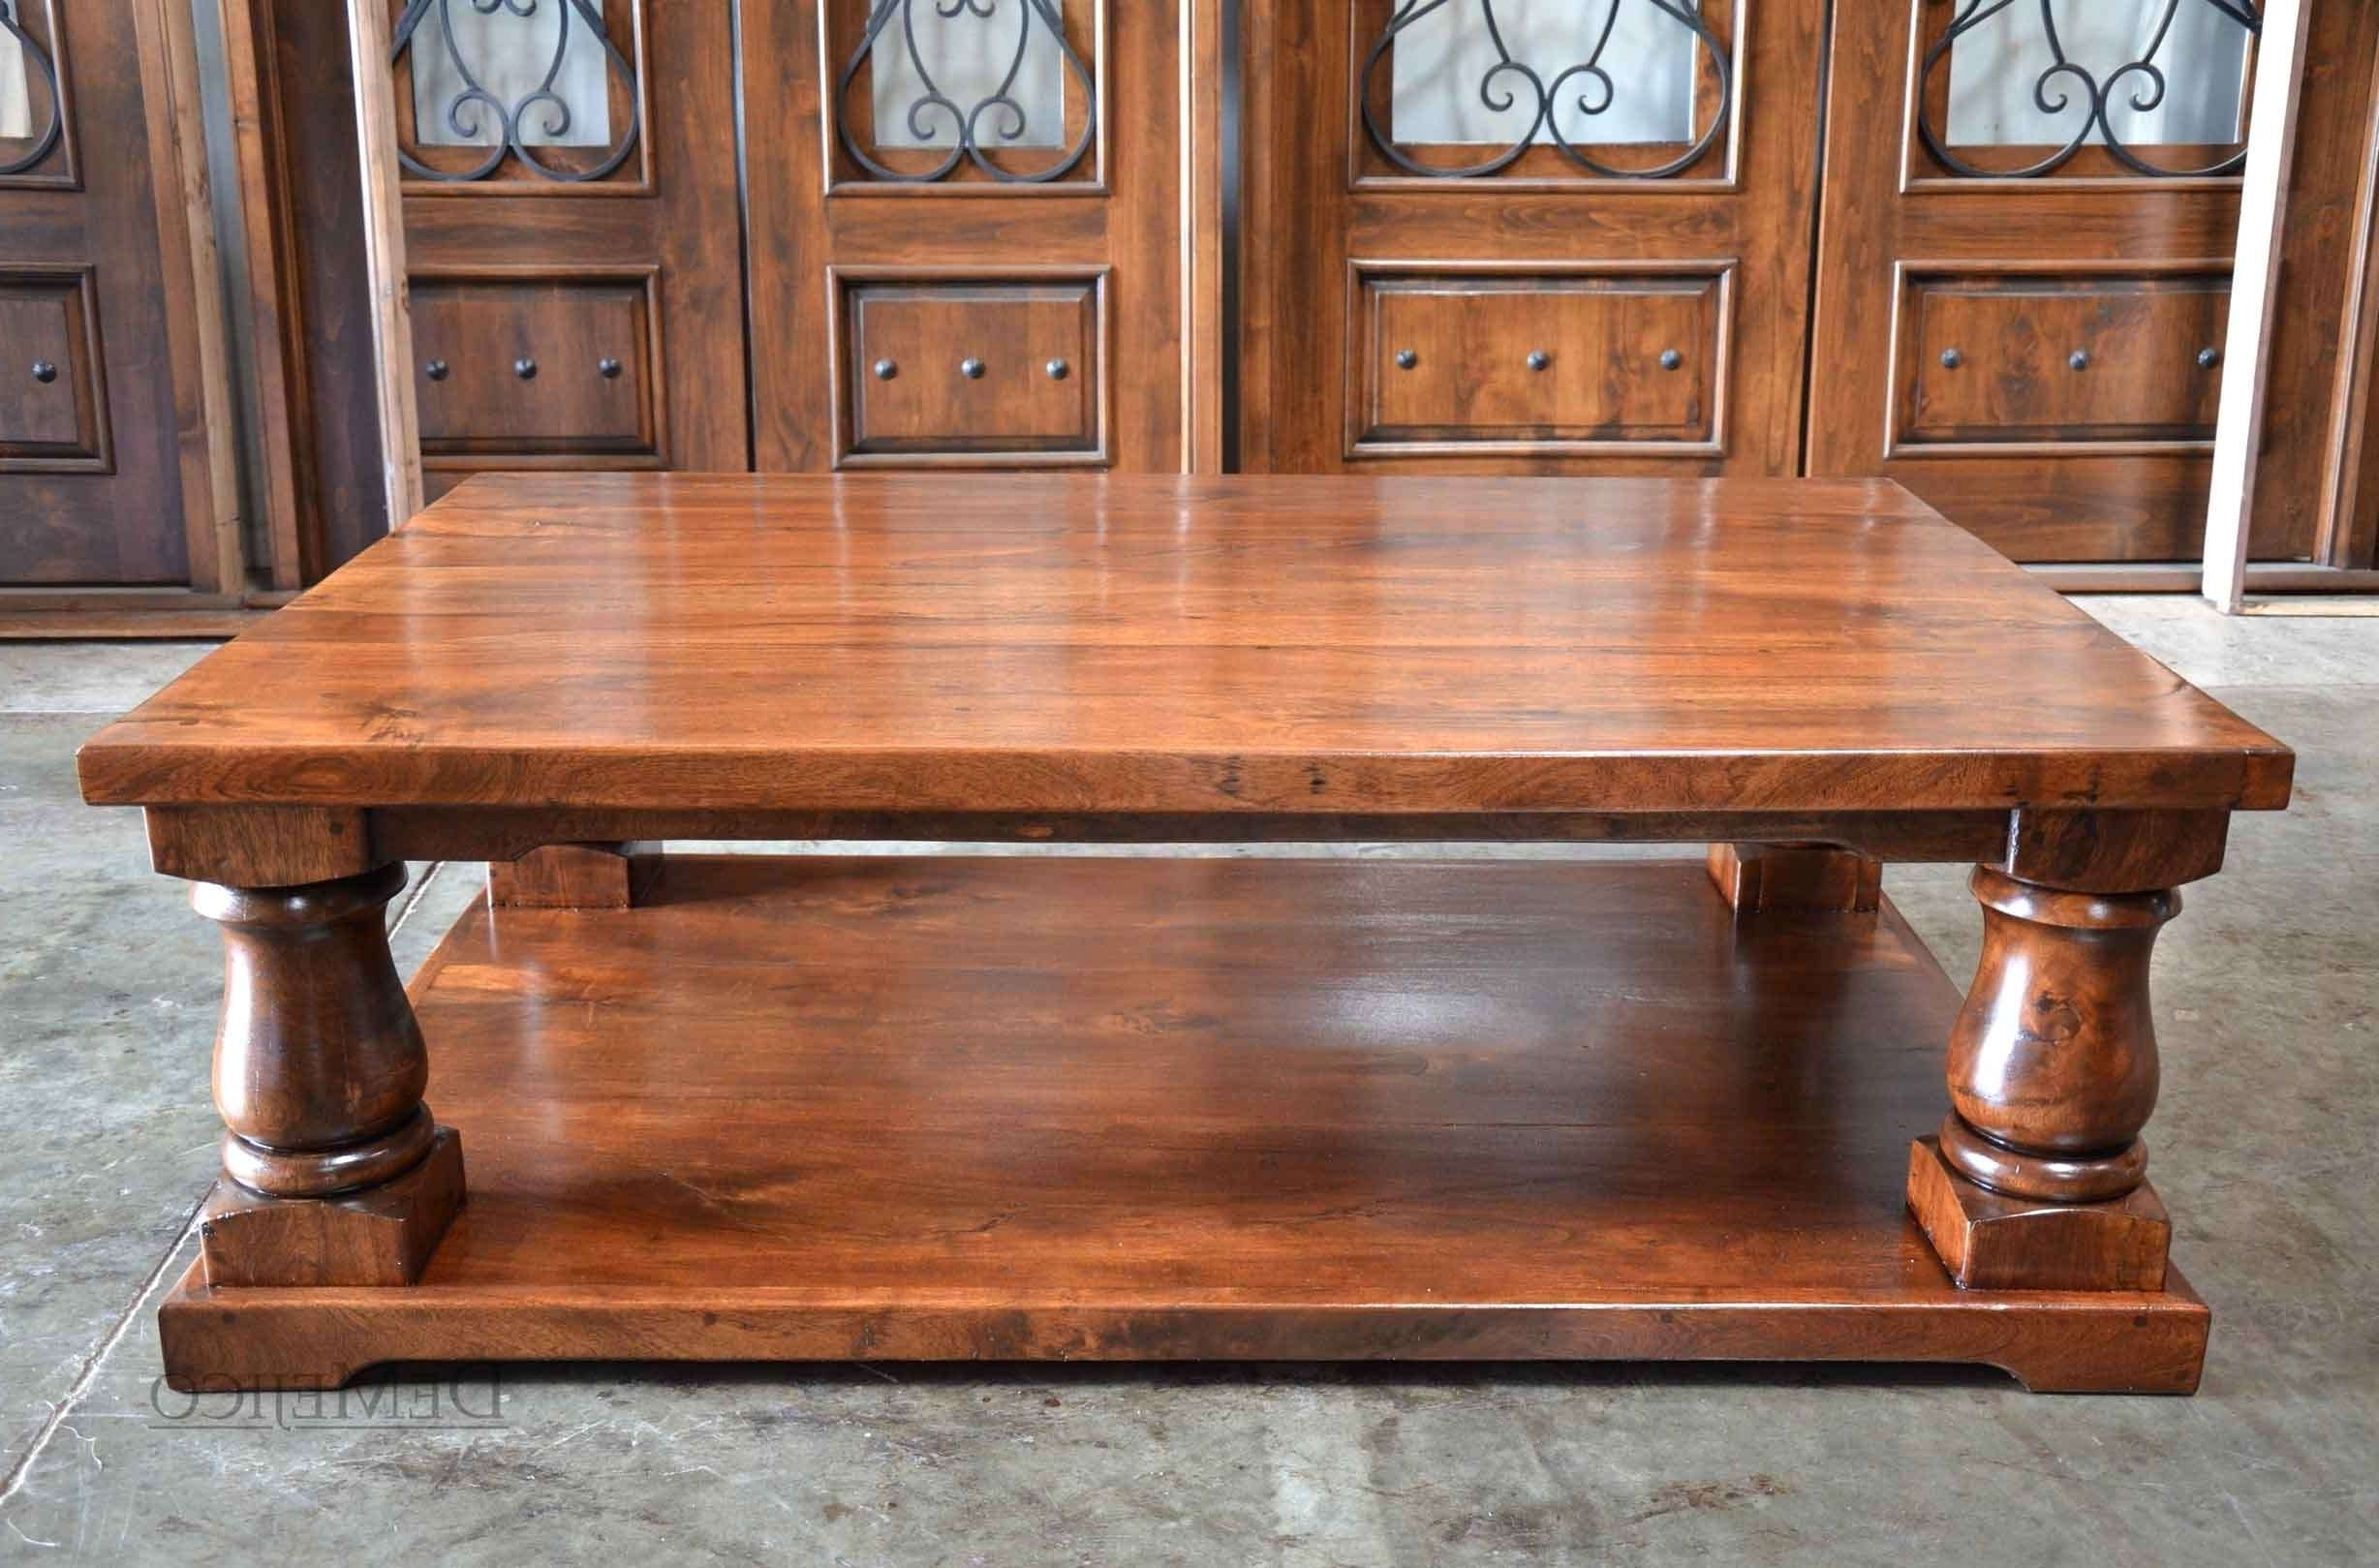 Favorite Antique Rustic Coffee Tables With Furniture Rustic Coffee Table With Wheels For Antique Living Room (View 13 of 20)